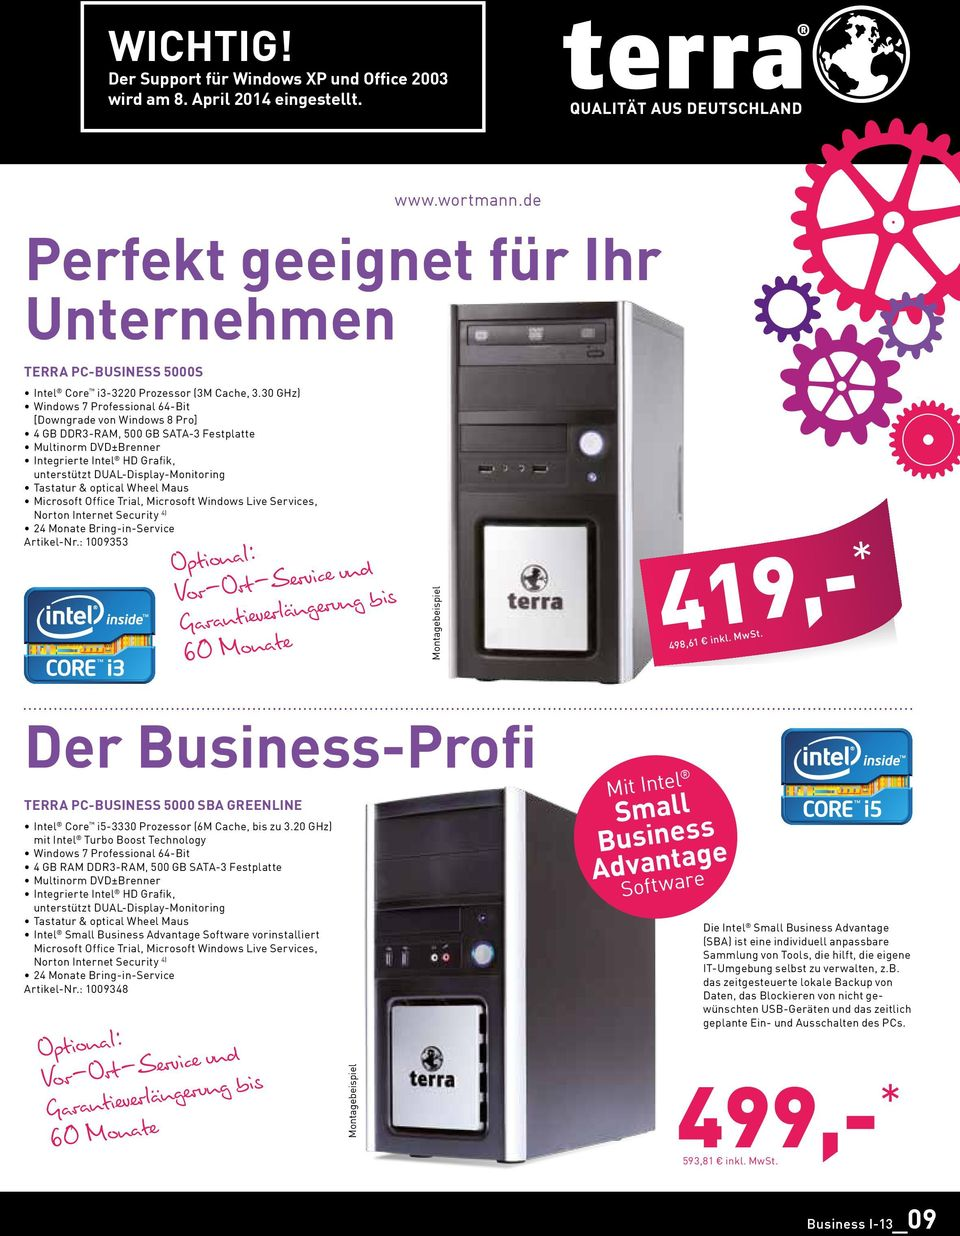 Microsoft Office Trial, Microsoft Windows Live Services, Norton Internet Security 4) 24 Monate Bring-in-Service Artikel-Nr.